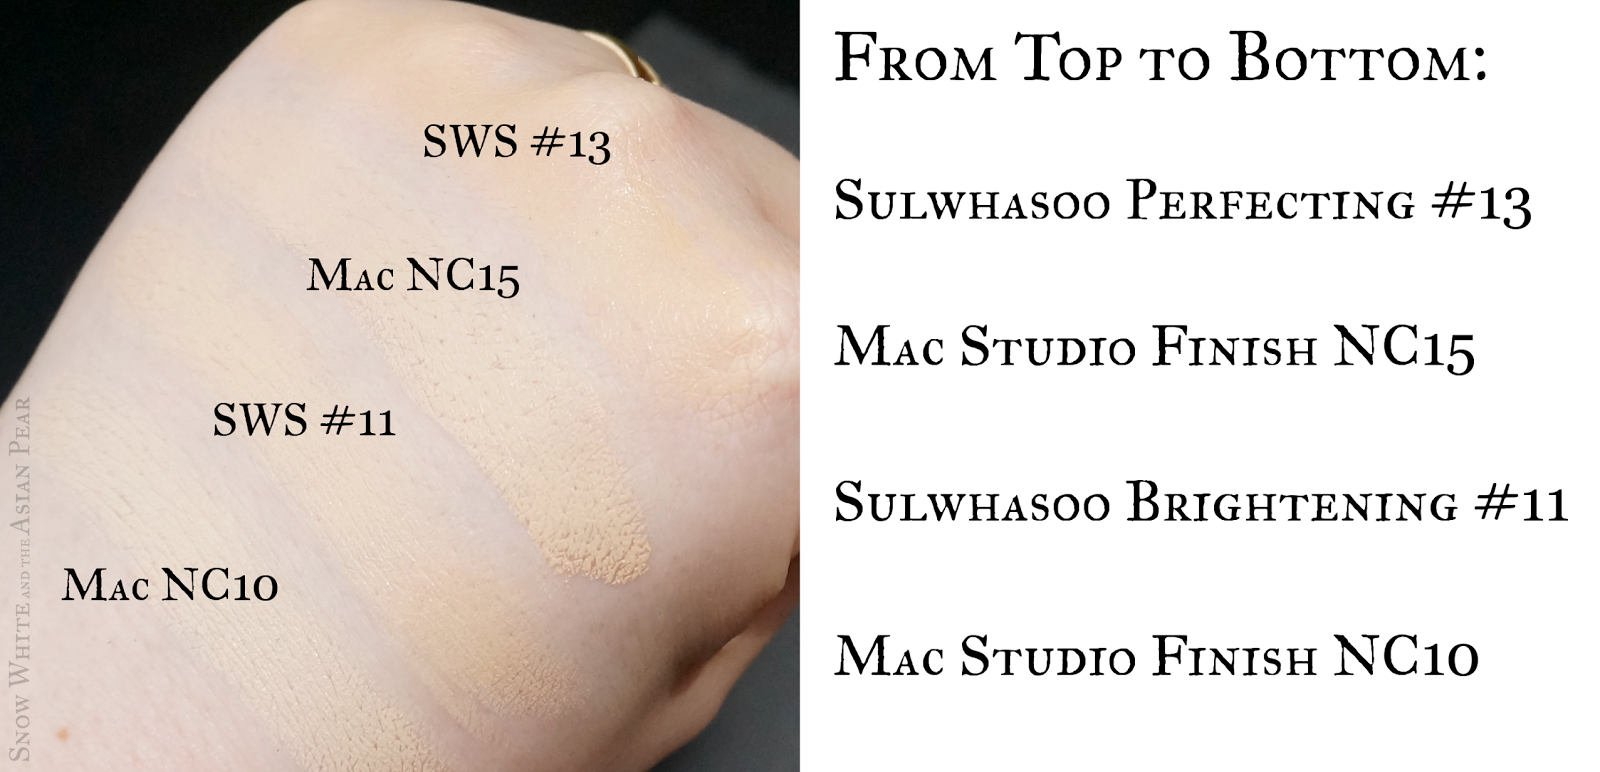 Sulwhasoo Golden Bird 2017 Limited Edition Cushion Snow White And Bedak Hera Compact Powder Uv Mist Spf 50 Pa I Have Not Colour Corrected This Photo Even Though Its A Bit Dark Thanks To The Clouds Rudely Zooming Over Sun During My Shots